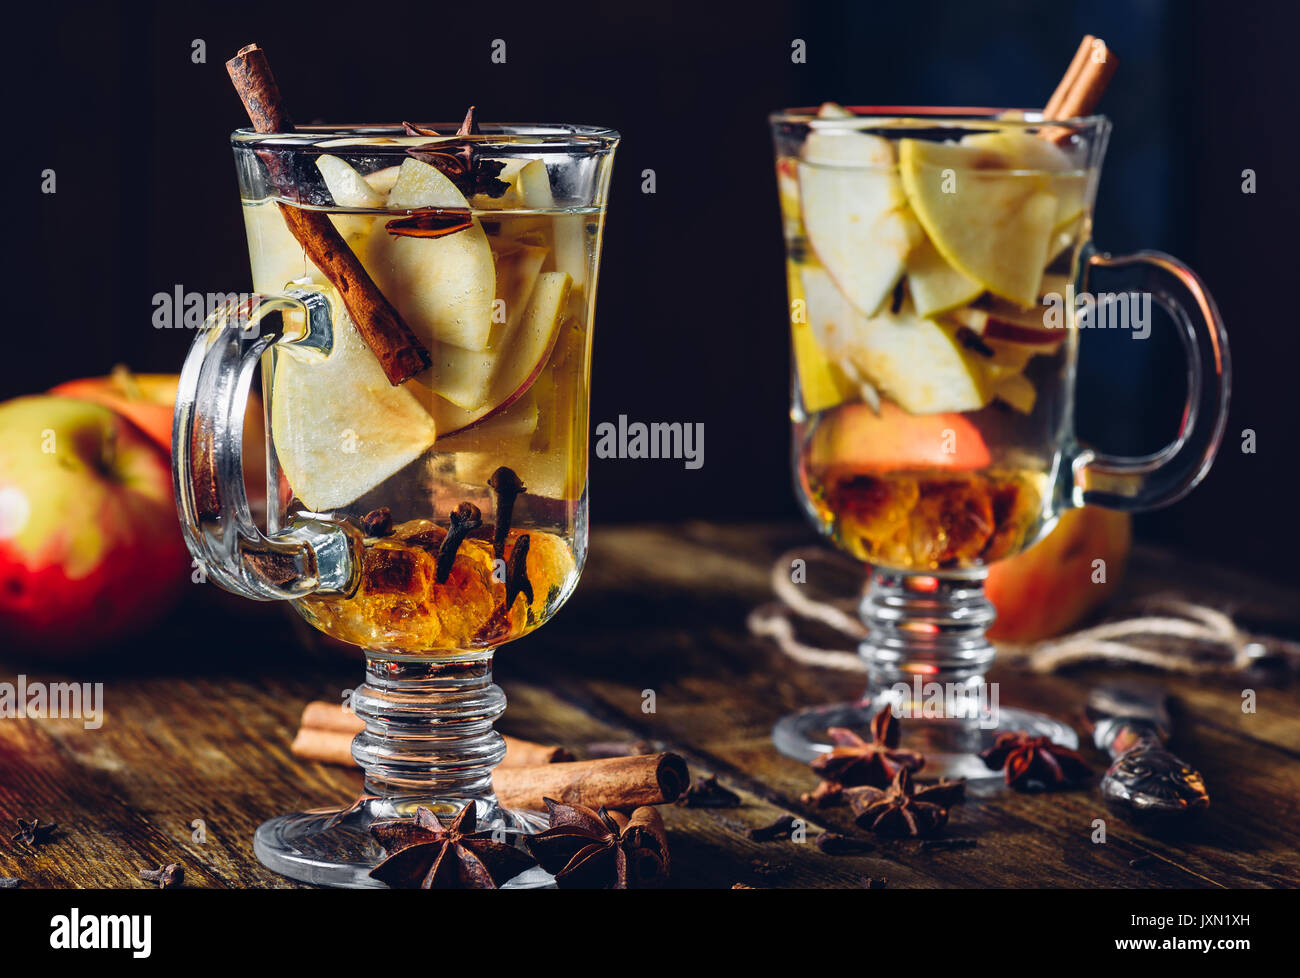 Two Glasses of Christmas Spiced Beverage with Sliced Apple, Clove, Cinnamon, Anise Star and Dark Candy Sugar. All Ingredients and Some Kitchen utensil - Stock Image